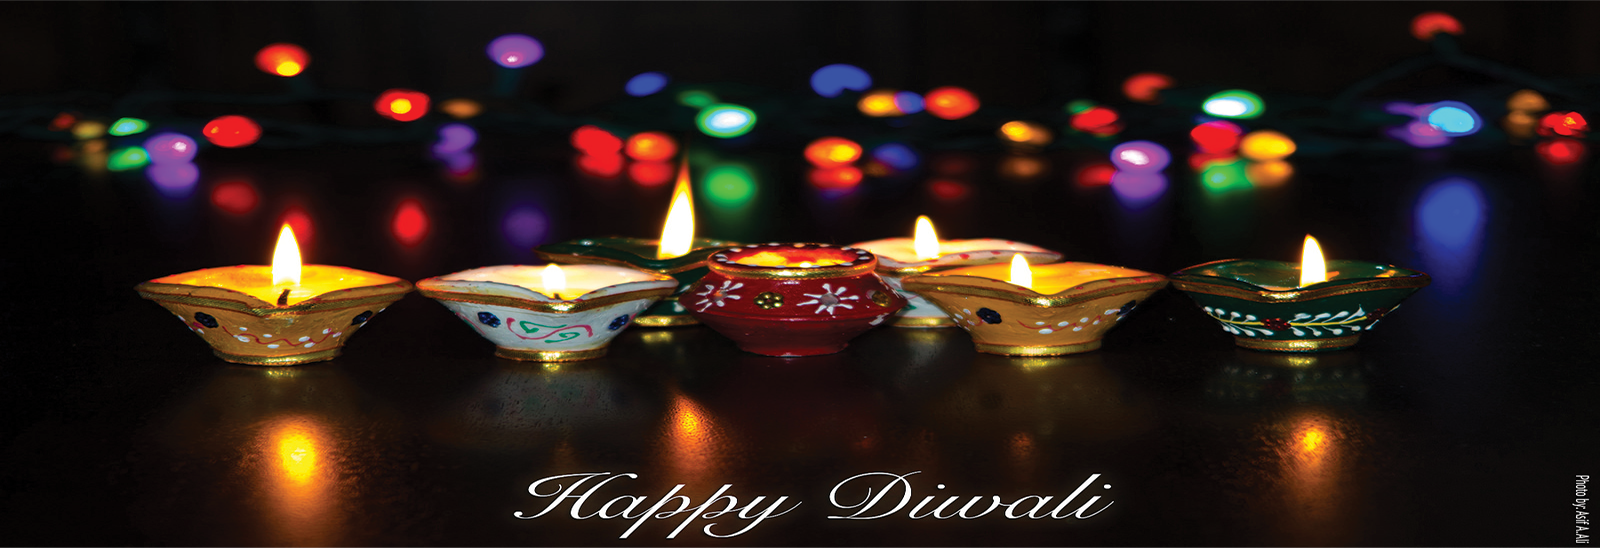 Diwali Candles 1600x548-2